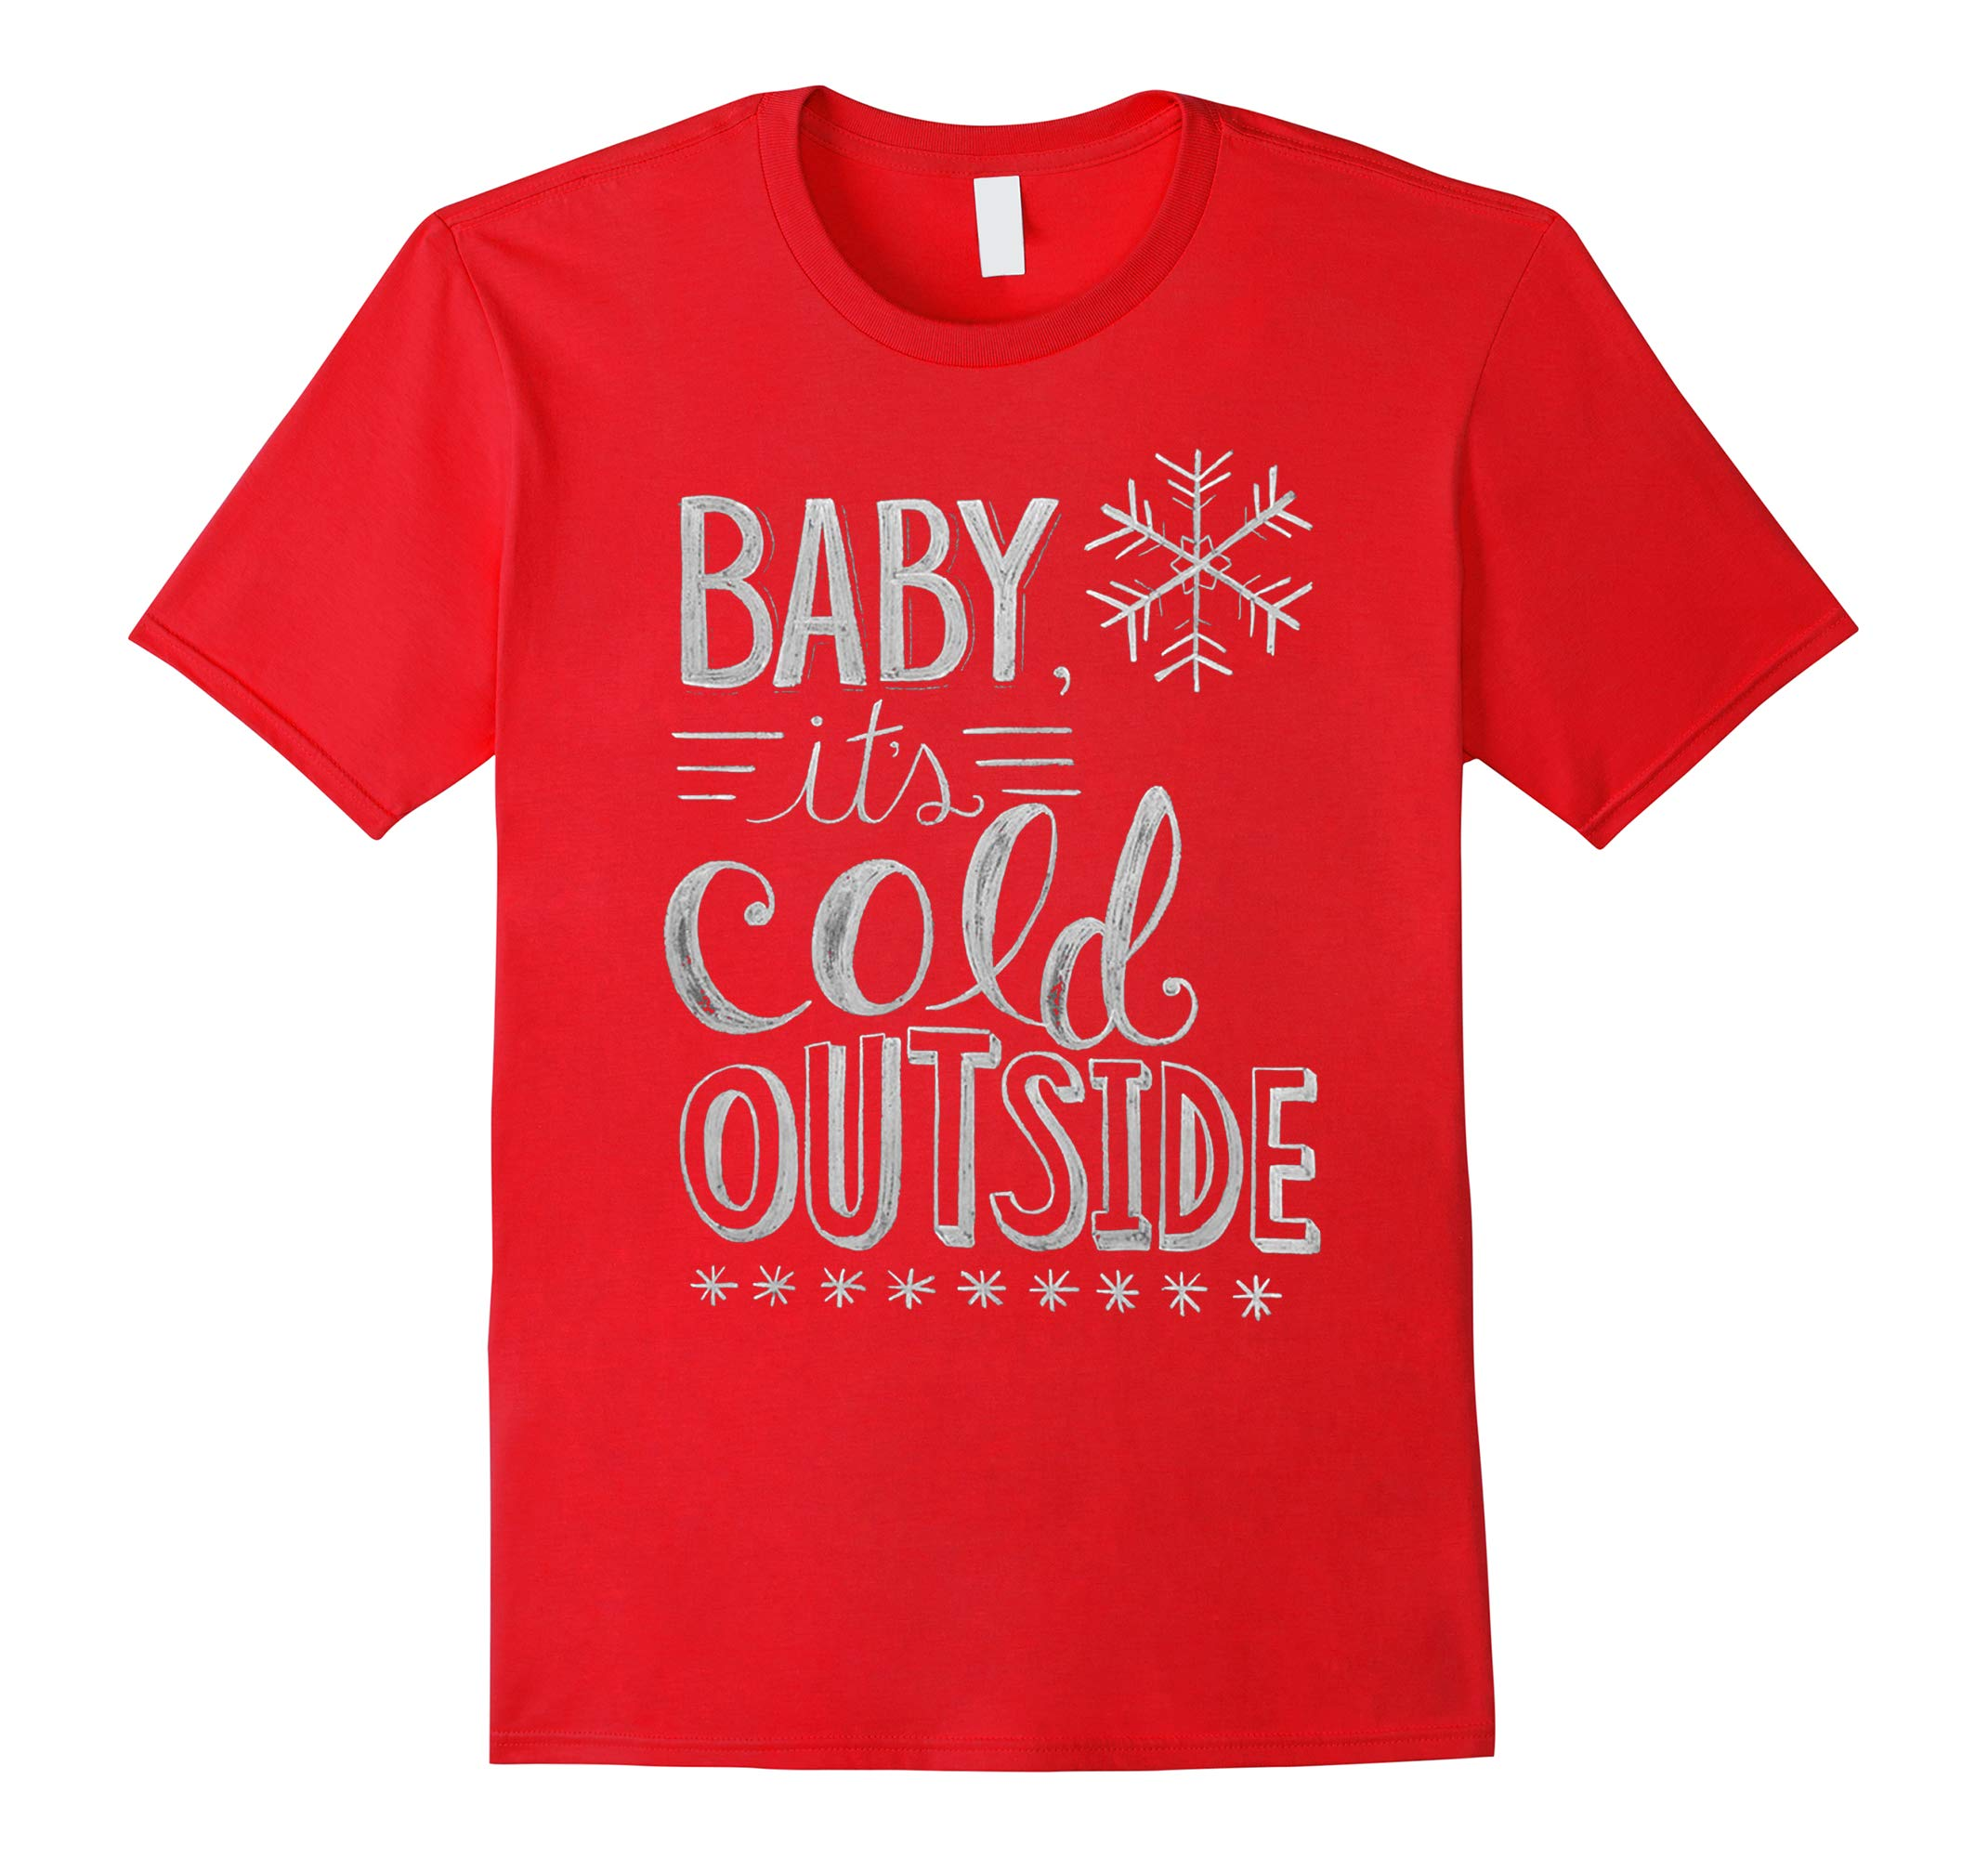 Yeah Baby it's cold outside christmas shirt-RT